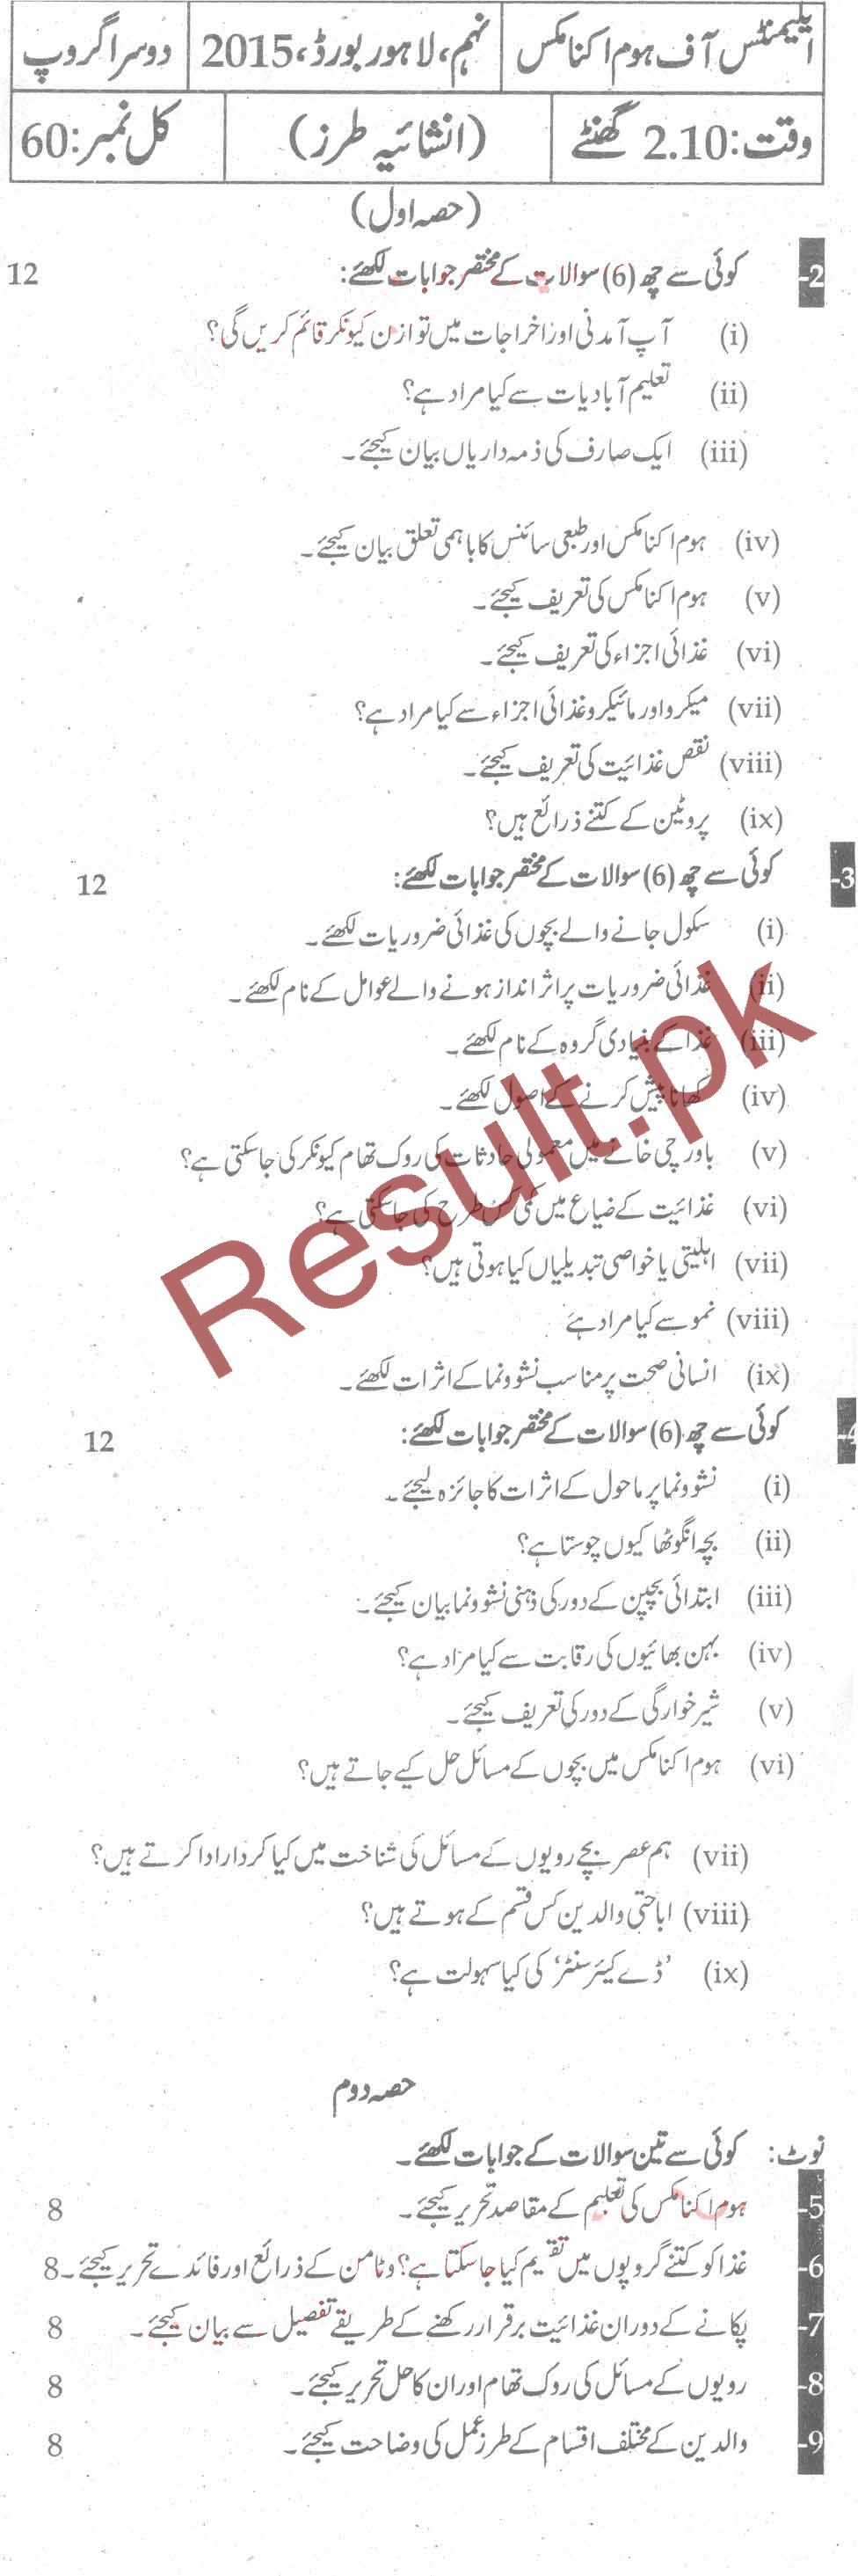 BISE Bahawalpur Board Past Papers 2018 Matric, SSC Part 1 & 2, 9th